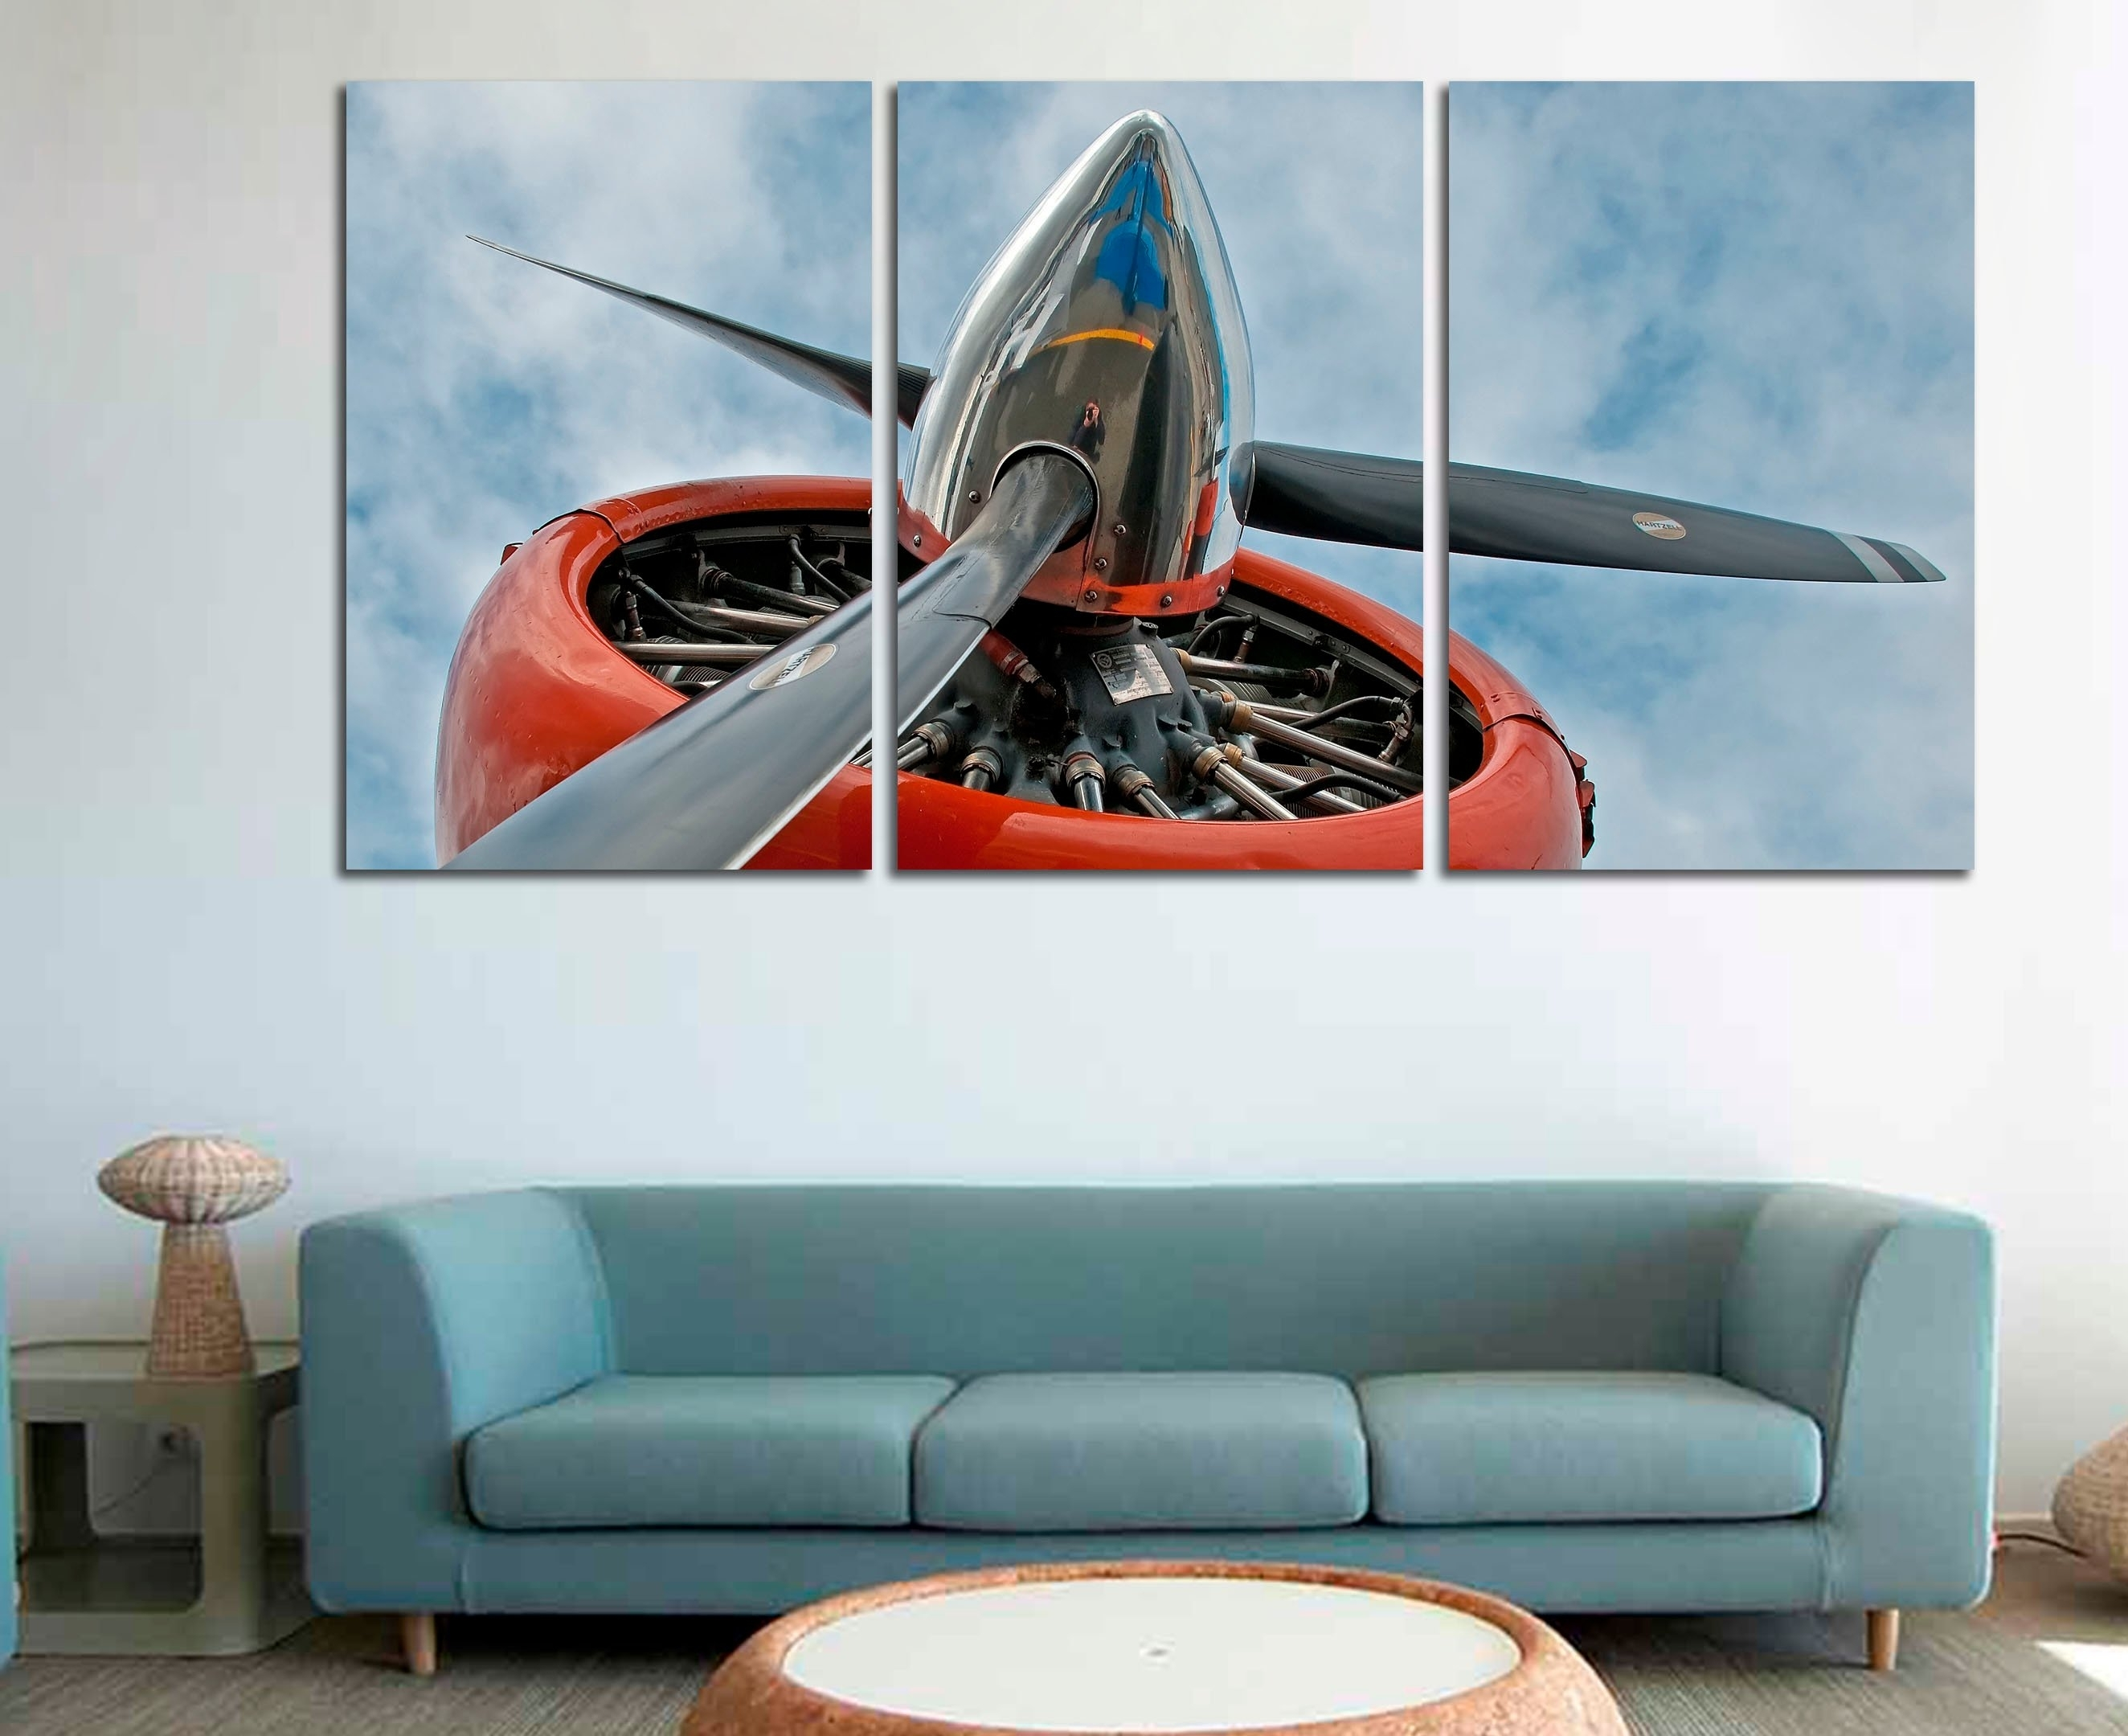 Airplane Wall Art Airplane Wall Decor Airplane Decor Airplane | Etsy with Airplane Wall Art (Image 7 of 20)